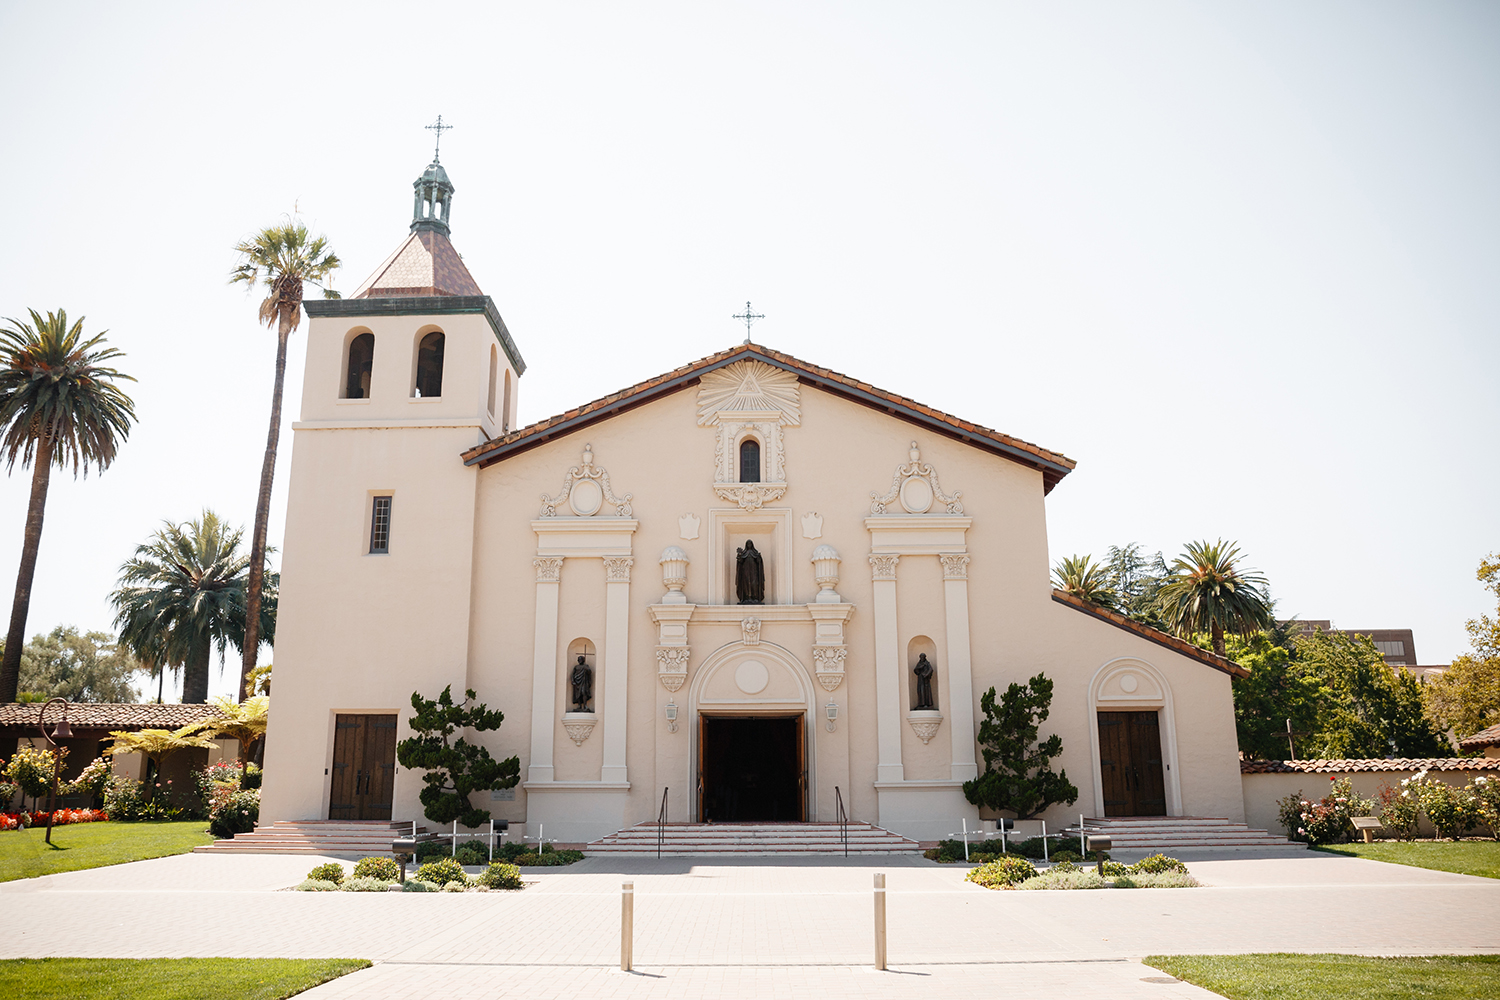 Outside of Mission Santa Clara de Asís in the Santa Clara University.